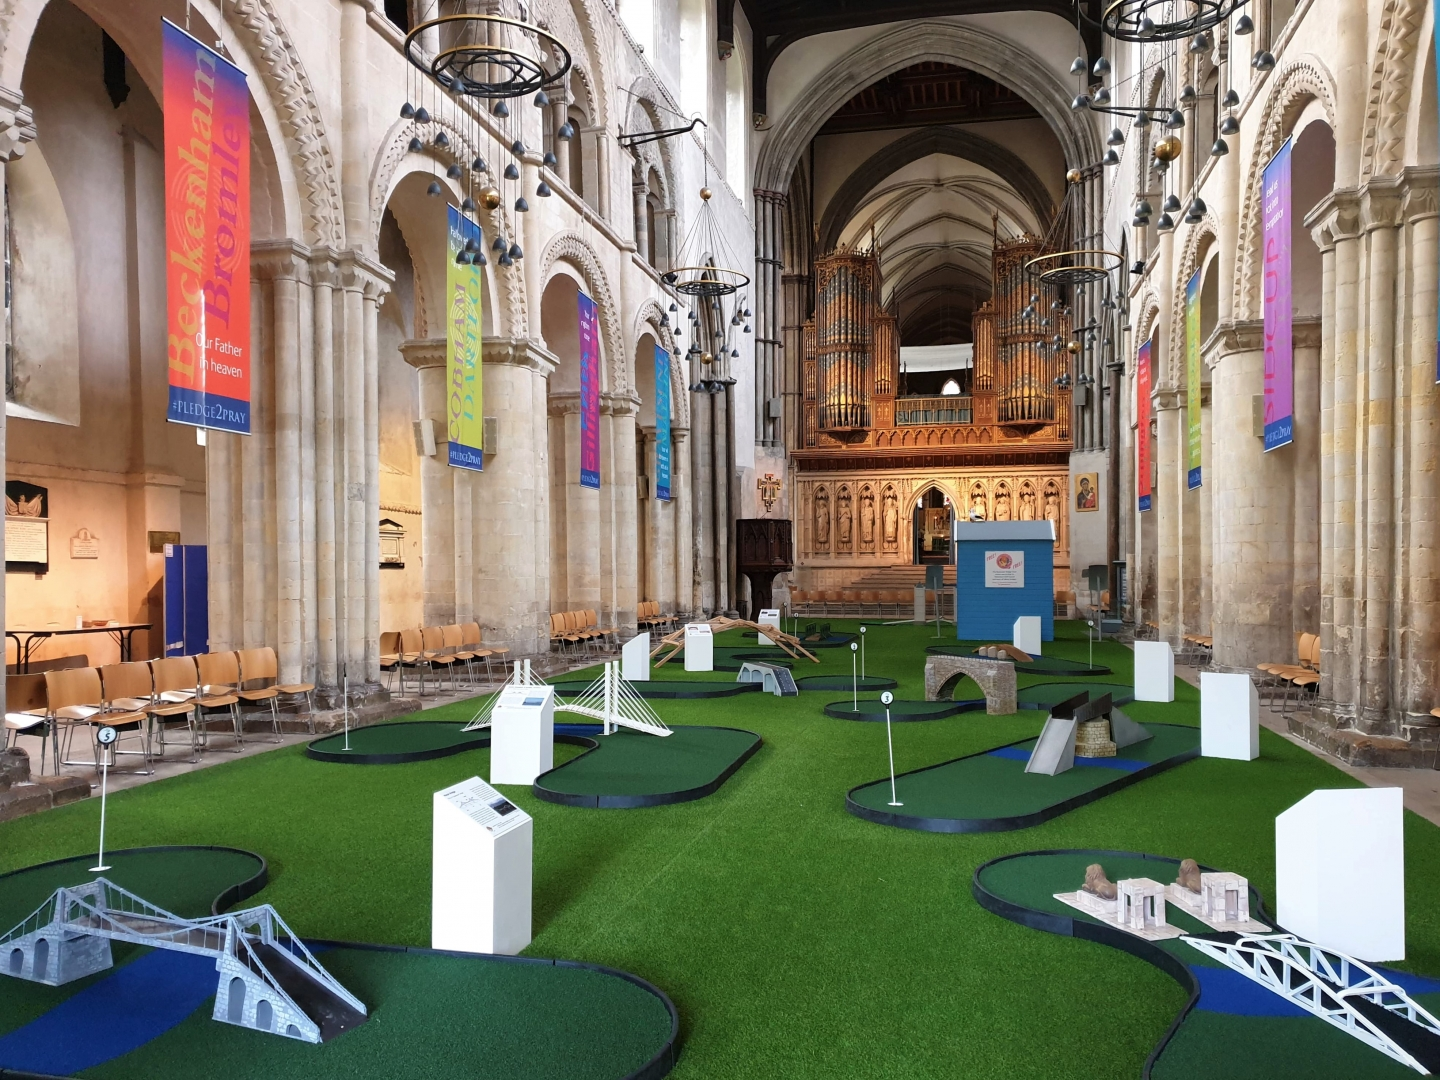 Rochester Cathedral adventure crazy golf in the nave Medway